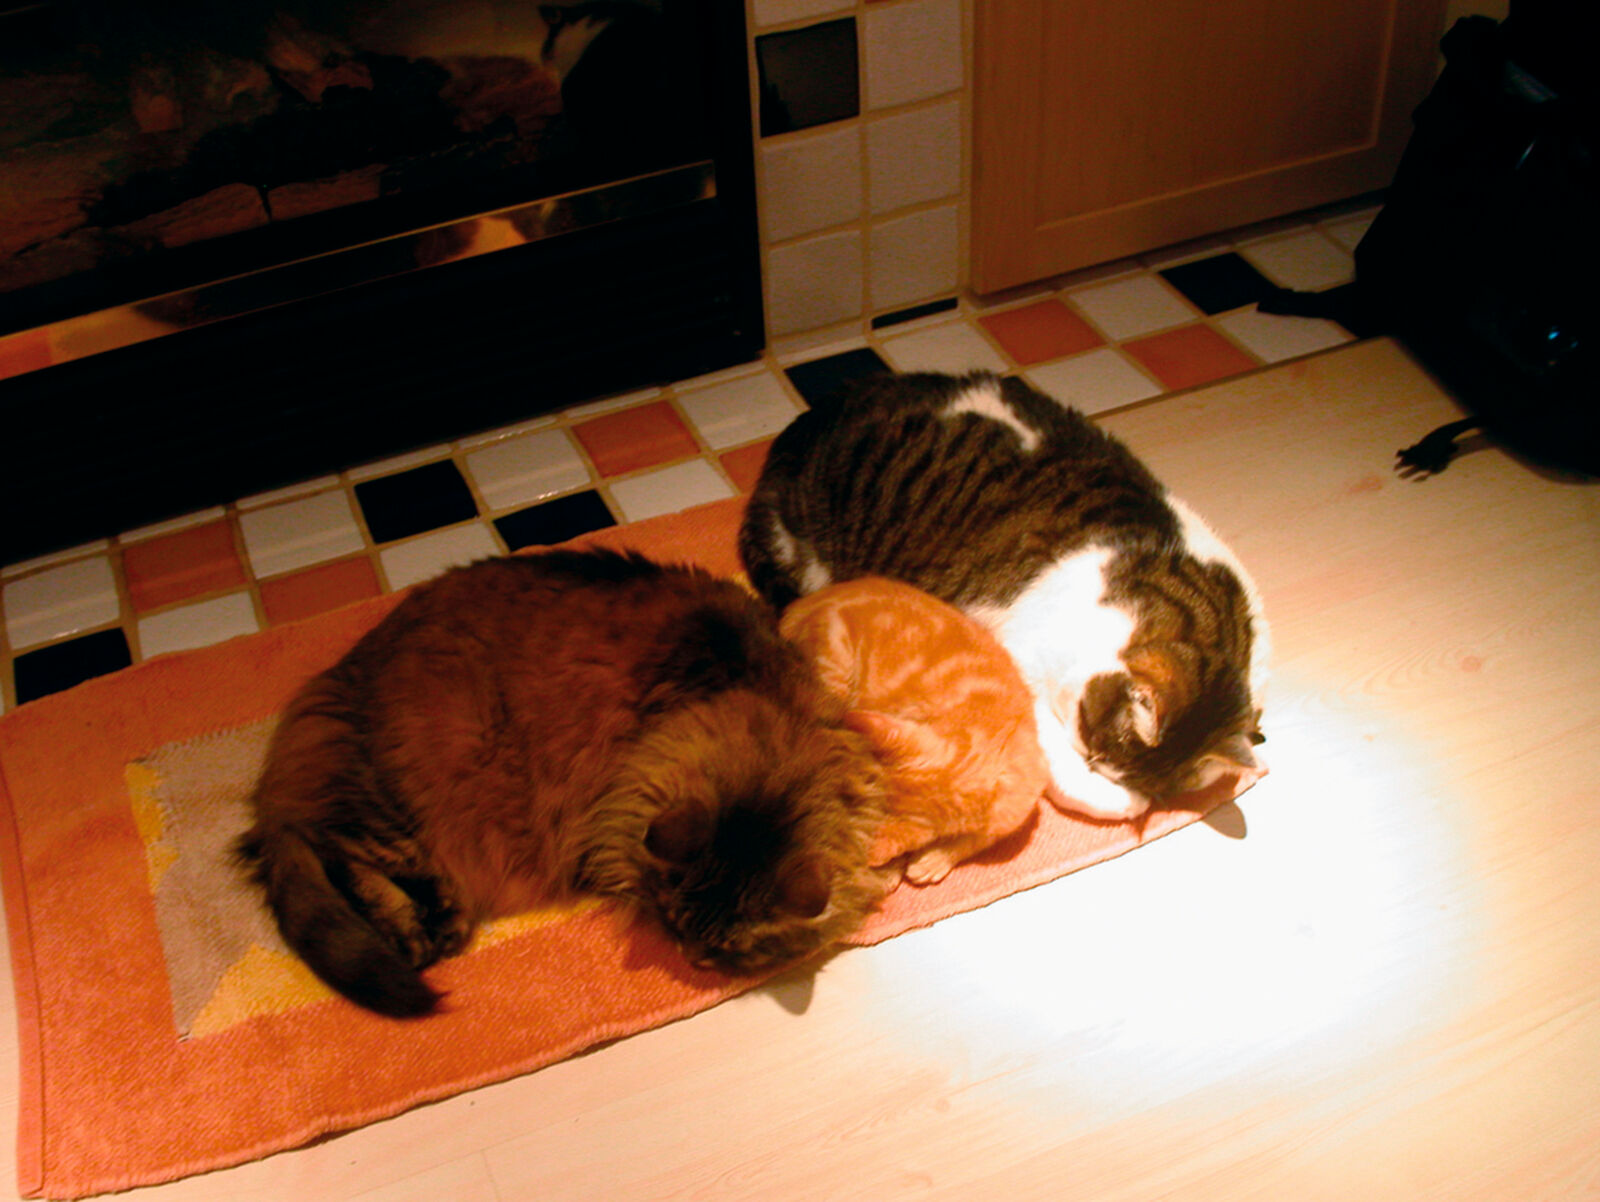 Figure 2. If they have been well socialized as kittens, and there is sufficient space with appropriate number of separated resources, cats may live together happily